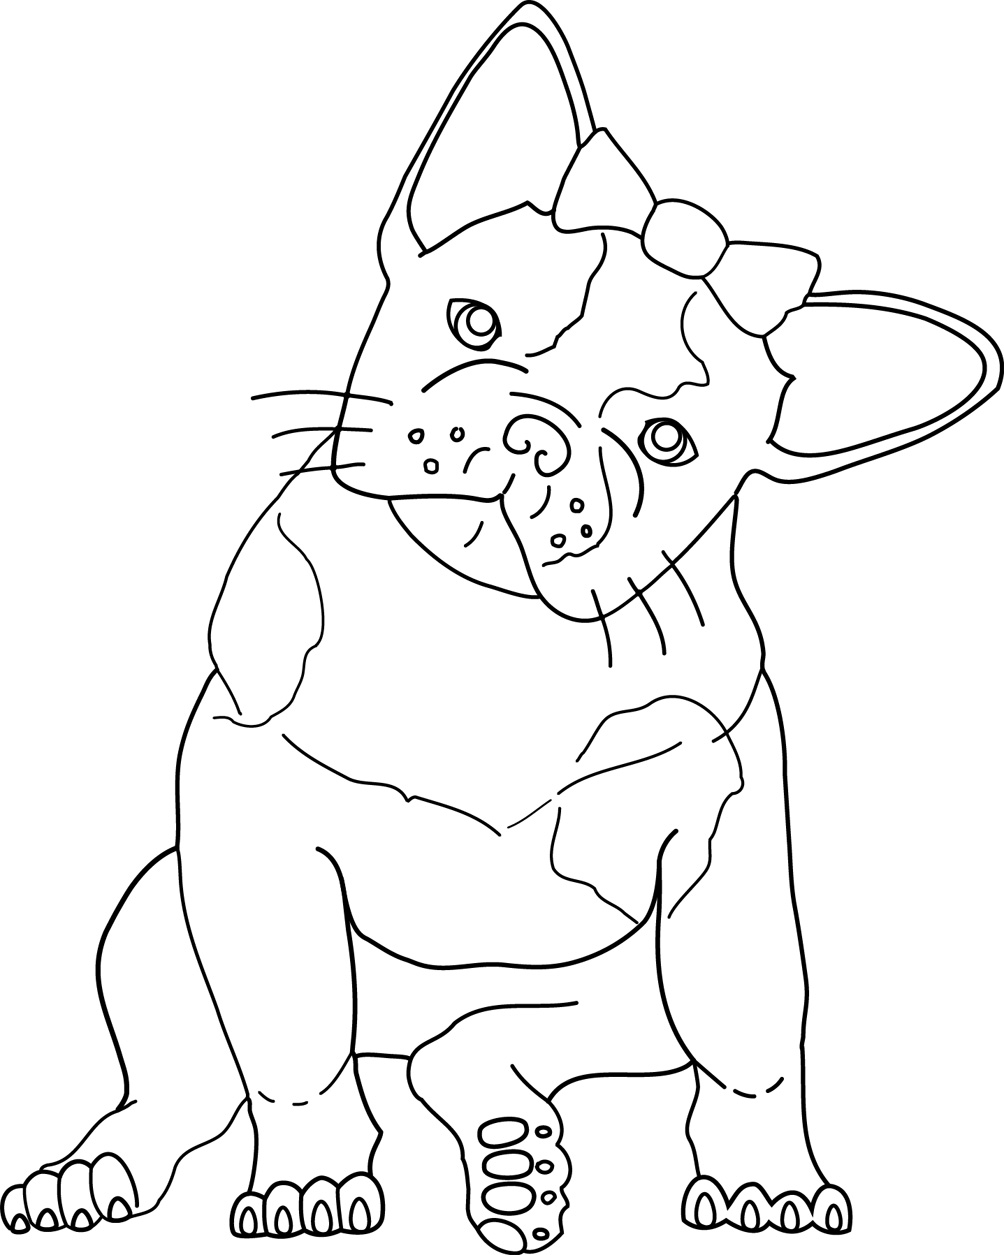 1004x1255 Draw French Bulldog Coloring Pages 18 In Line Drawings